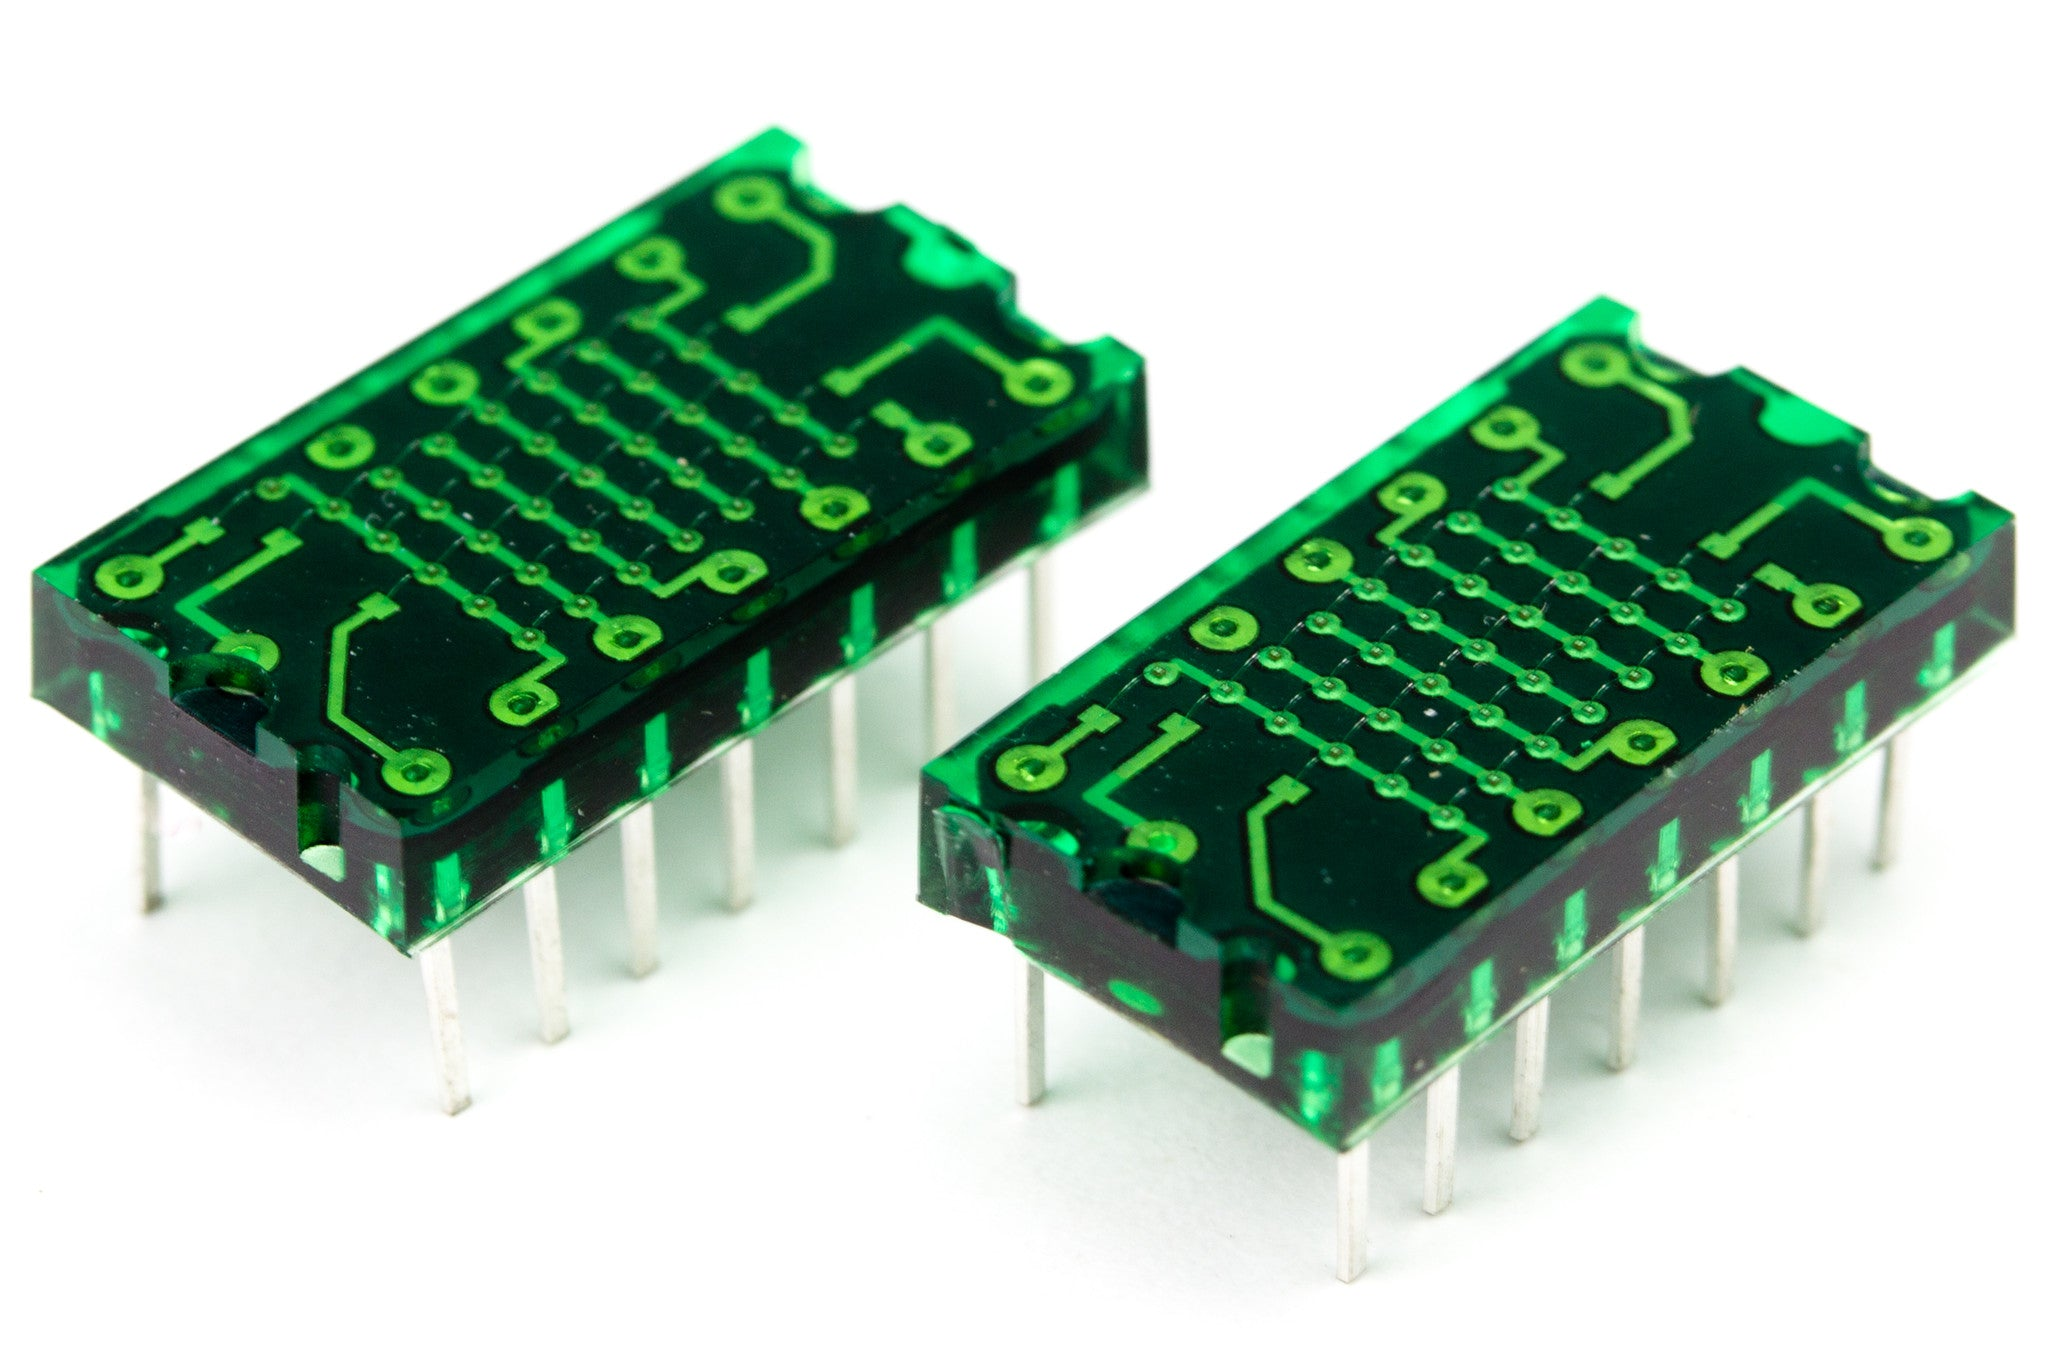 Javascript Blocks Editor Rgb Led Driver Chip Application Circuit With I2c Interface Module 1 Of 2v1469107802